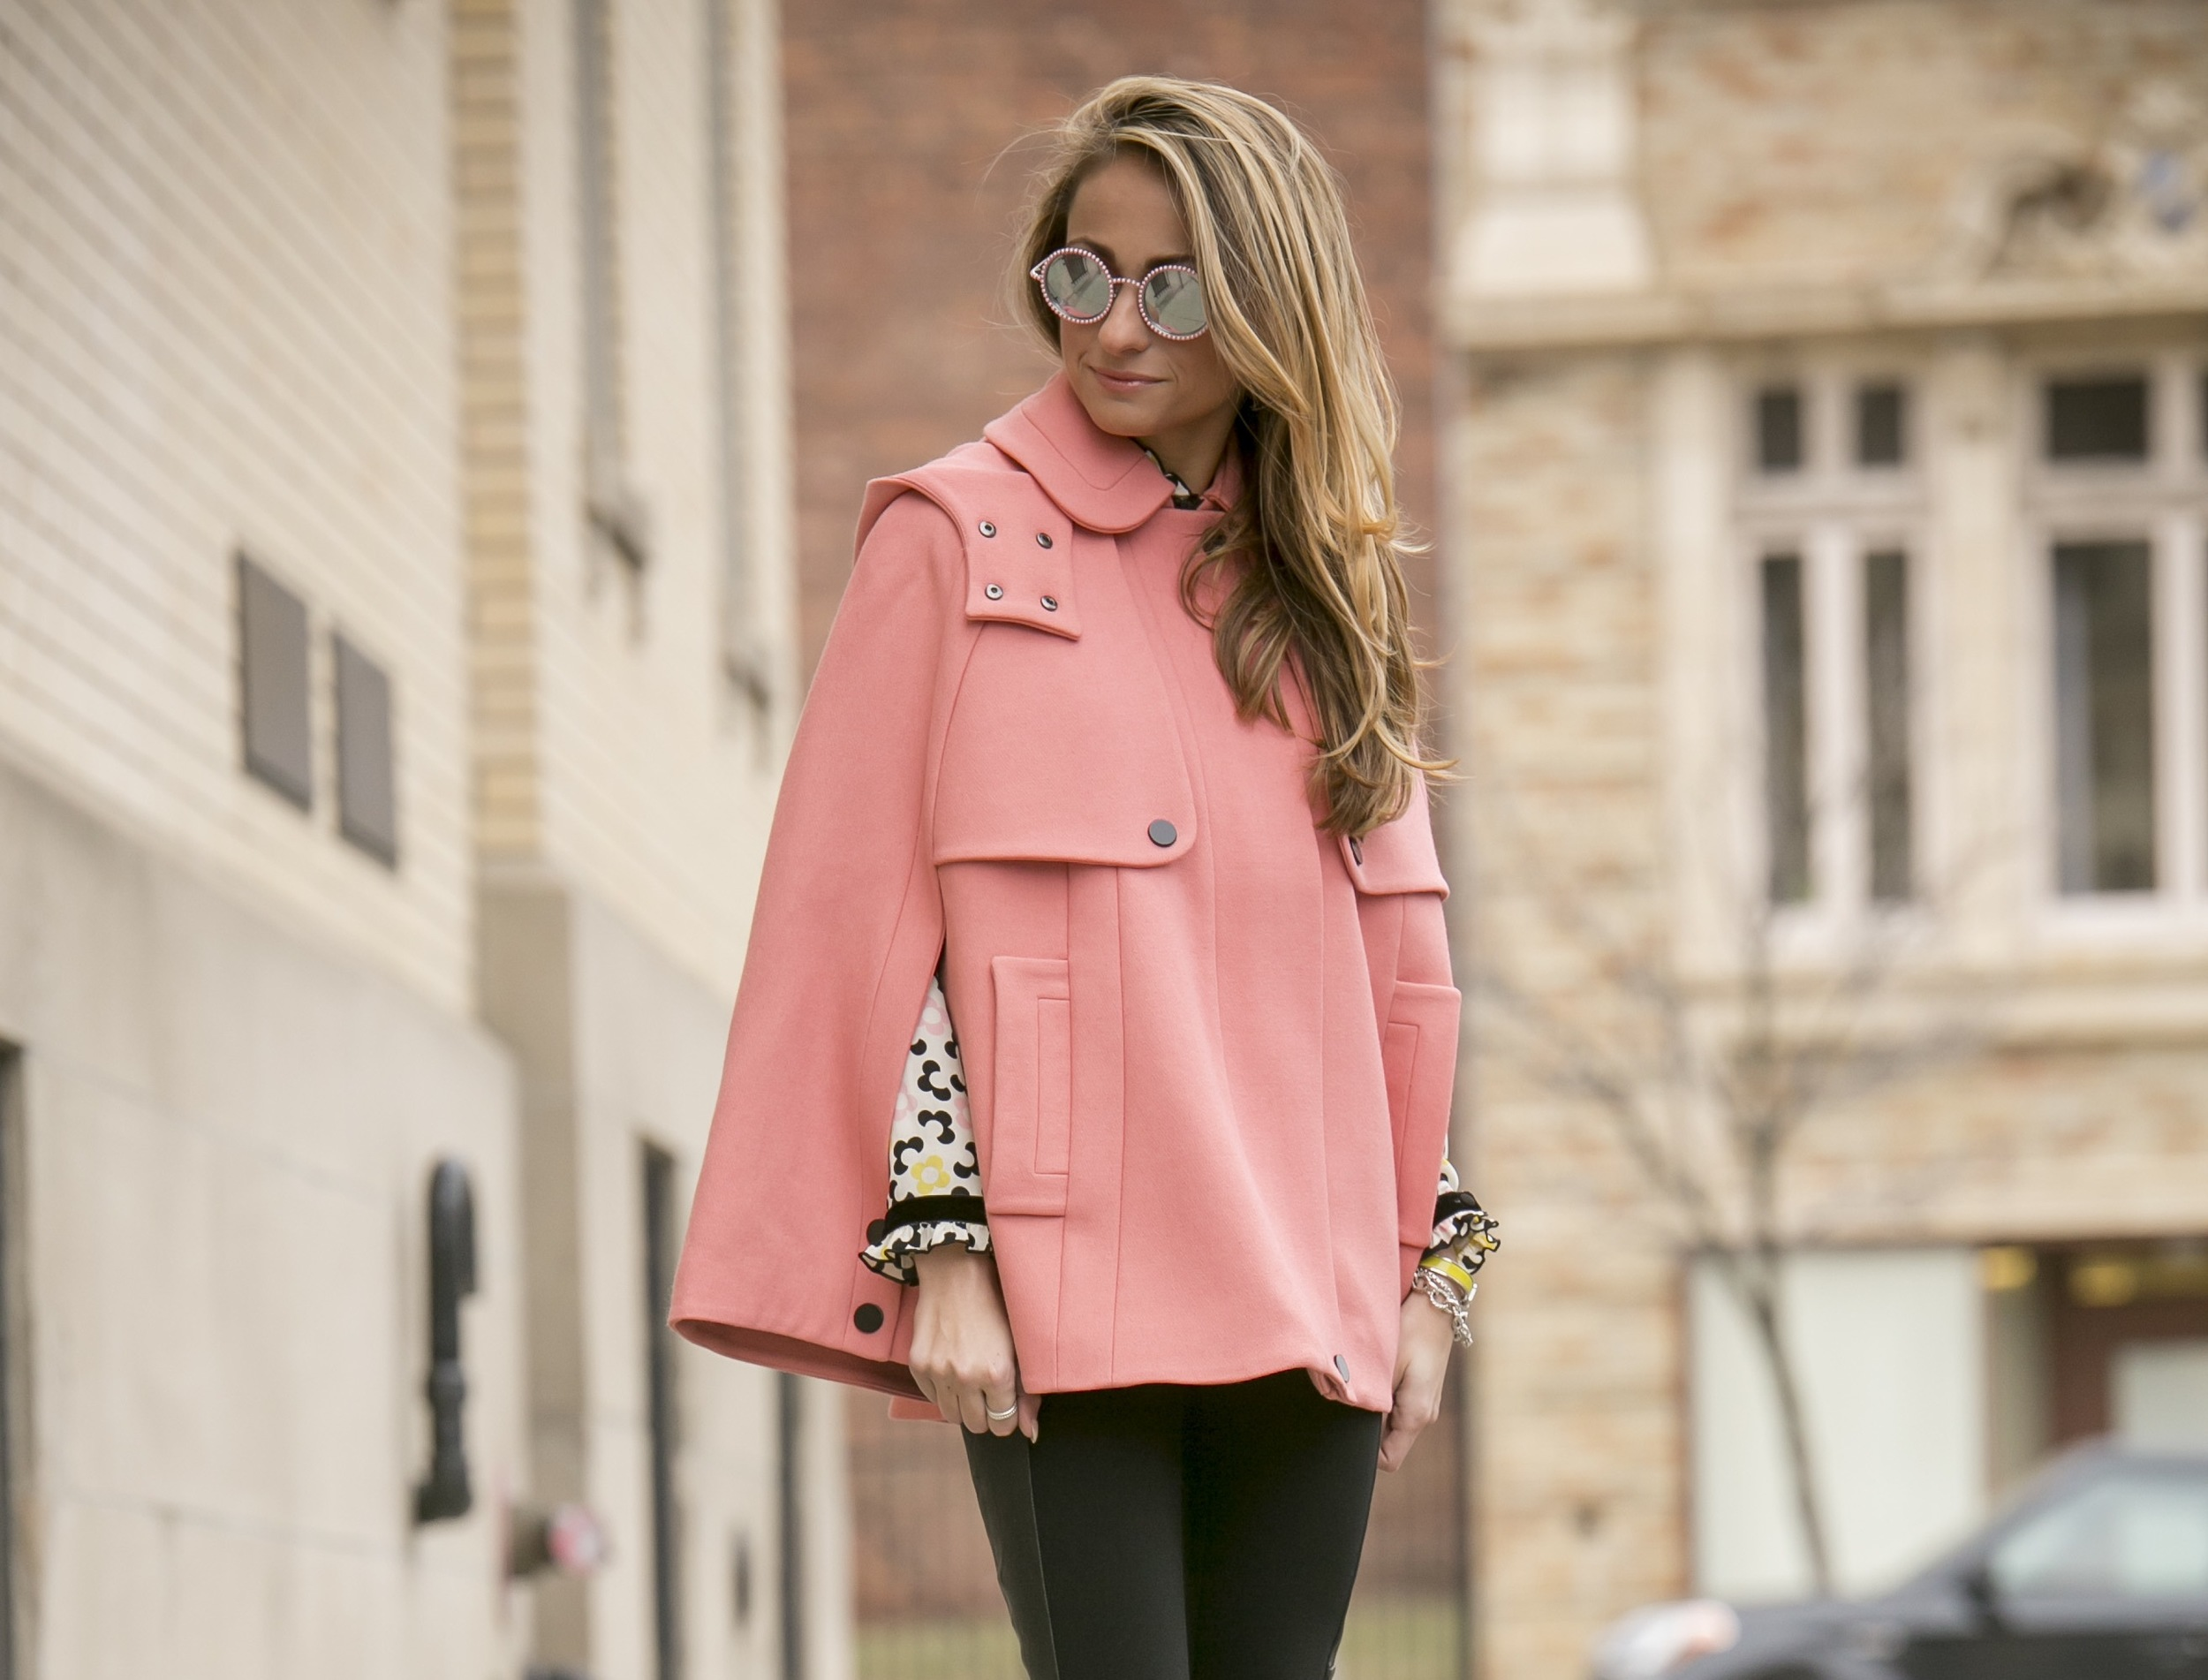 streetstyle featuring pink orla kiely cape